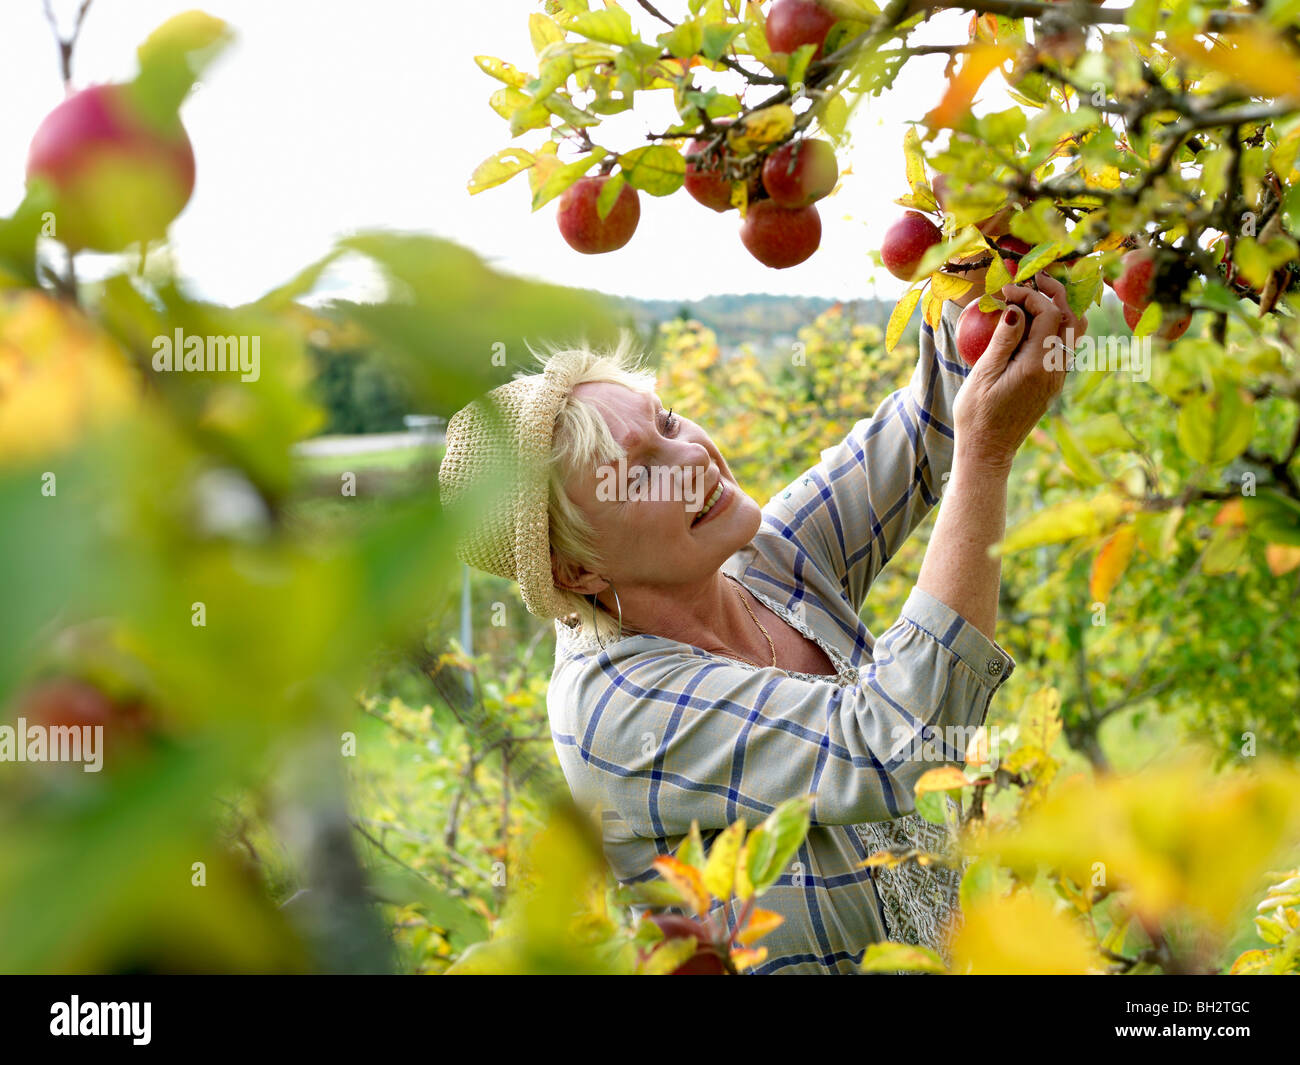 Young Woman picking apples Photo Stock